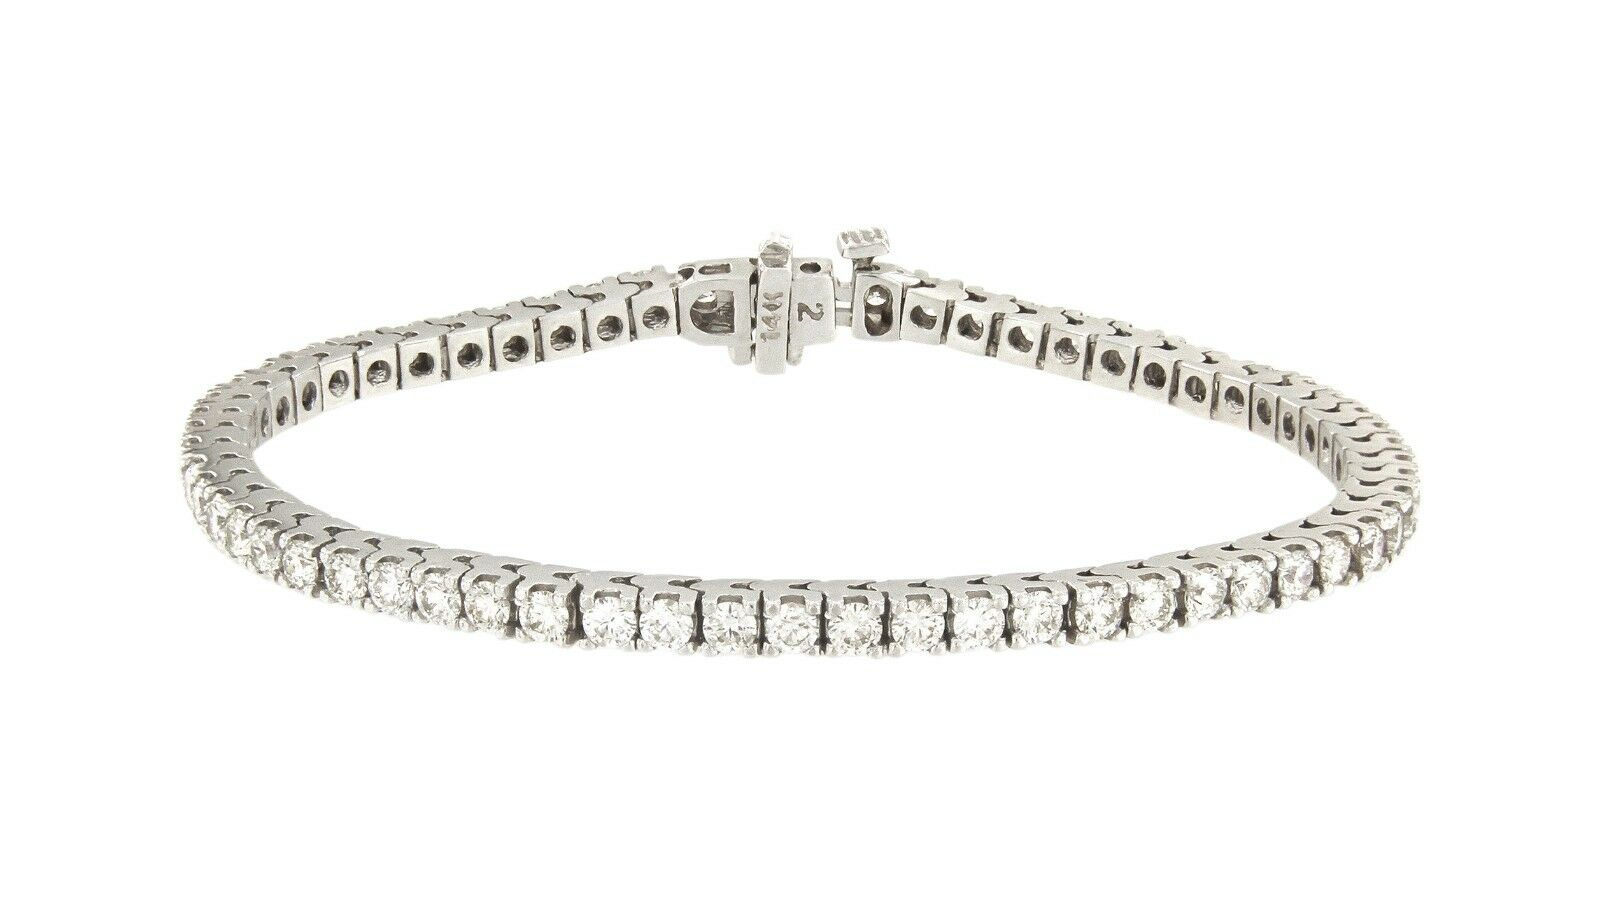 Exquisite White gold Diamond Bracelet